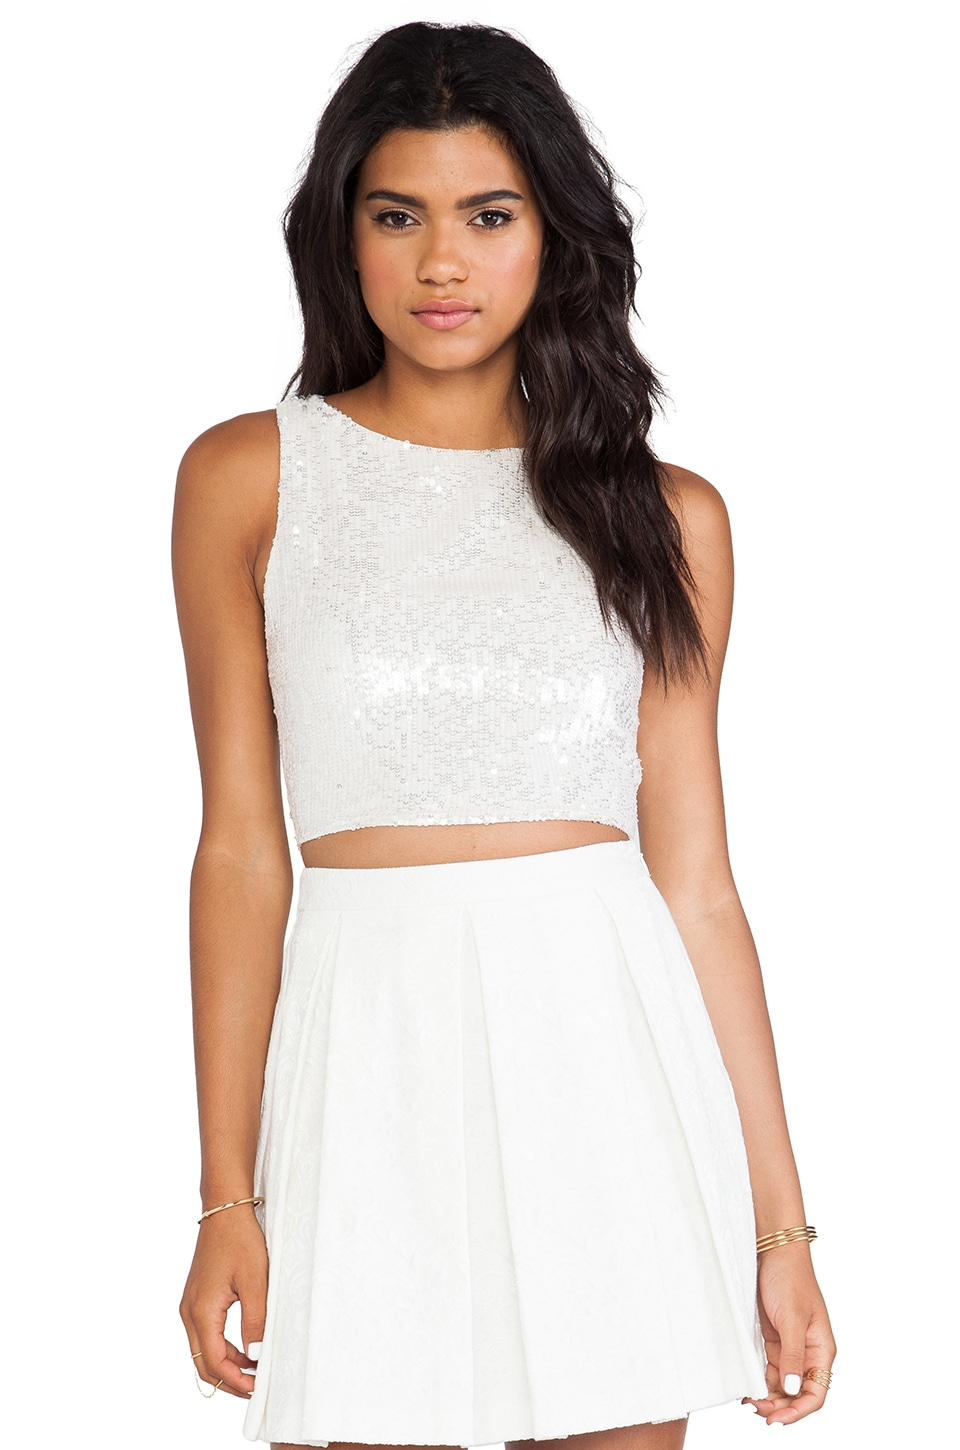 Alice + Olivia Pire Sleeveless Crop Top in White